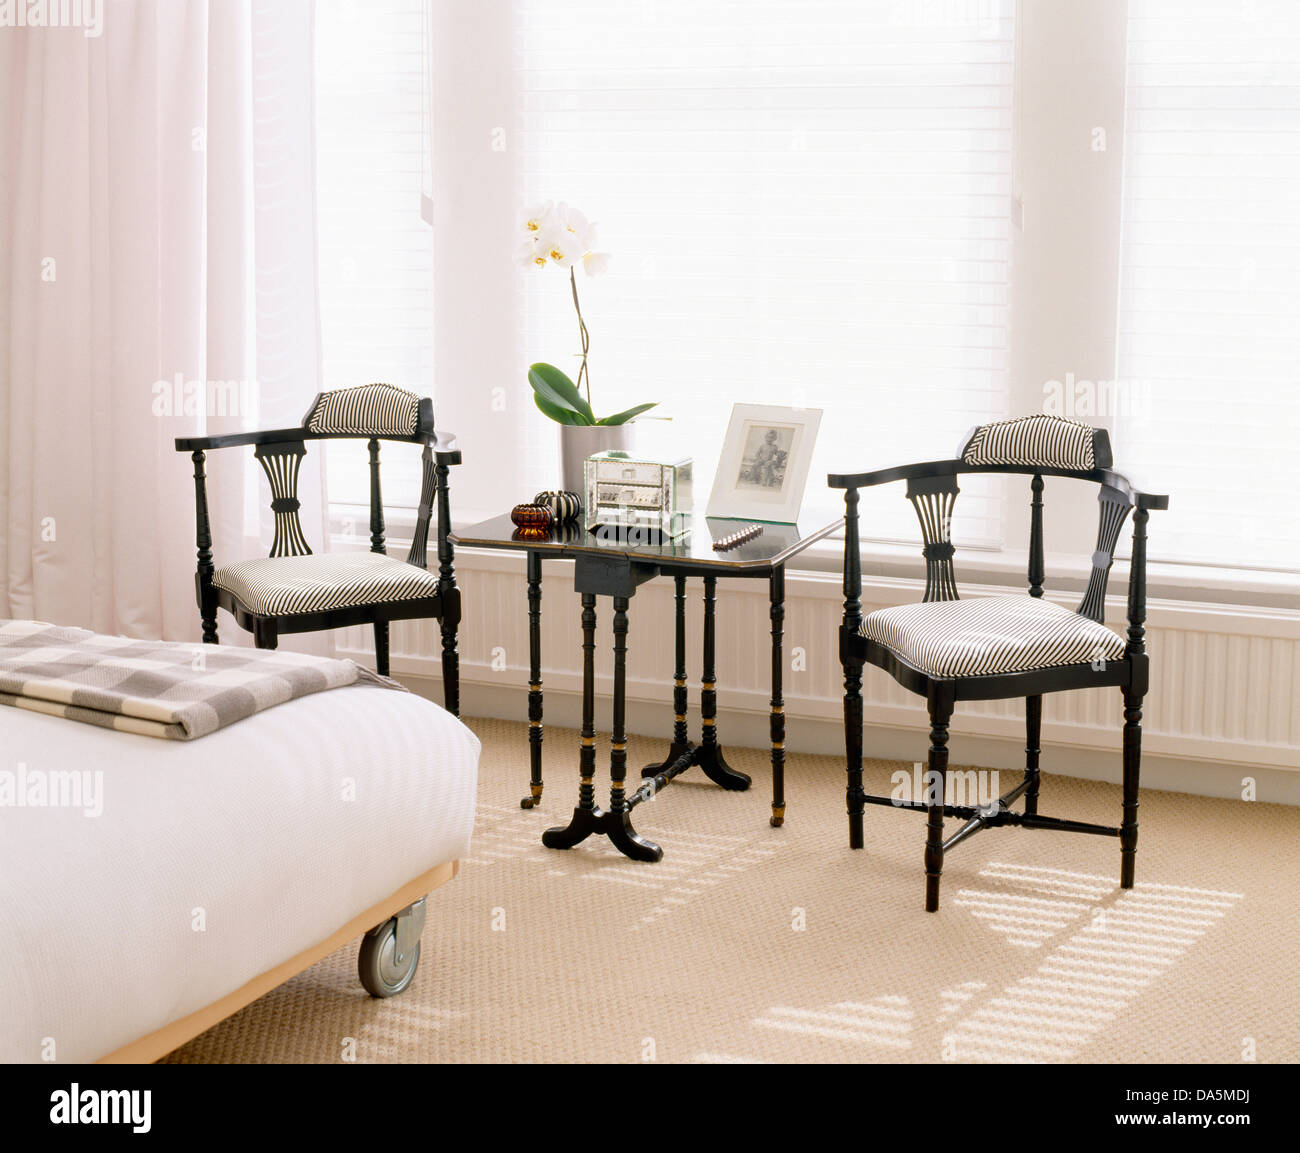 Small Chairs For Bedroom Antique Edwardian Style Chairs And Small Table In Front Of Window